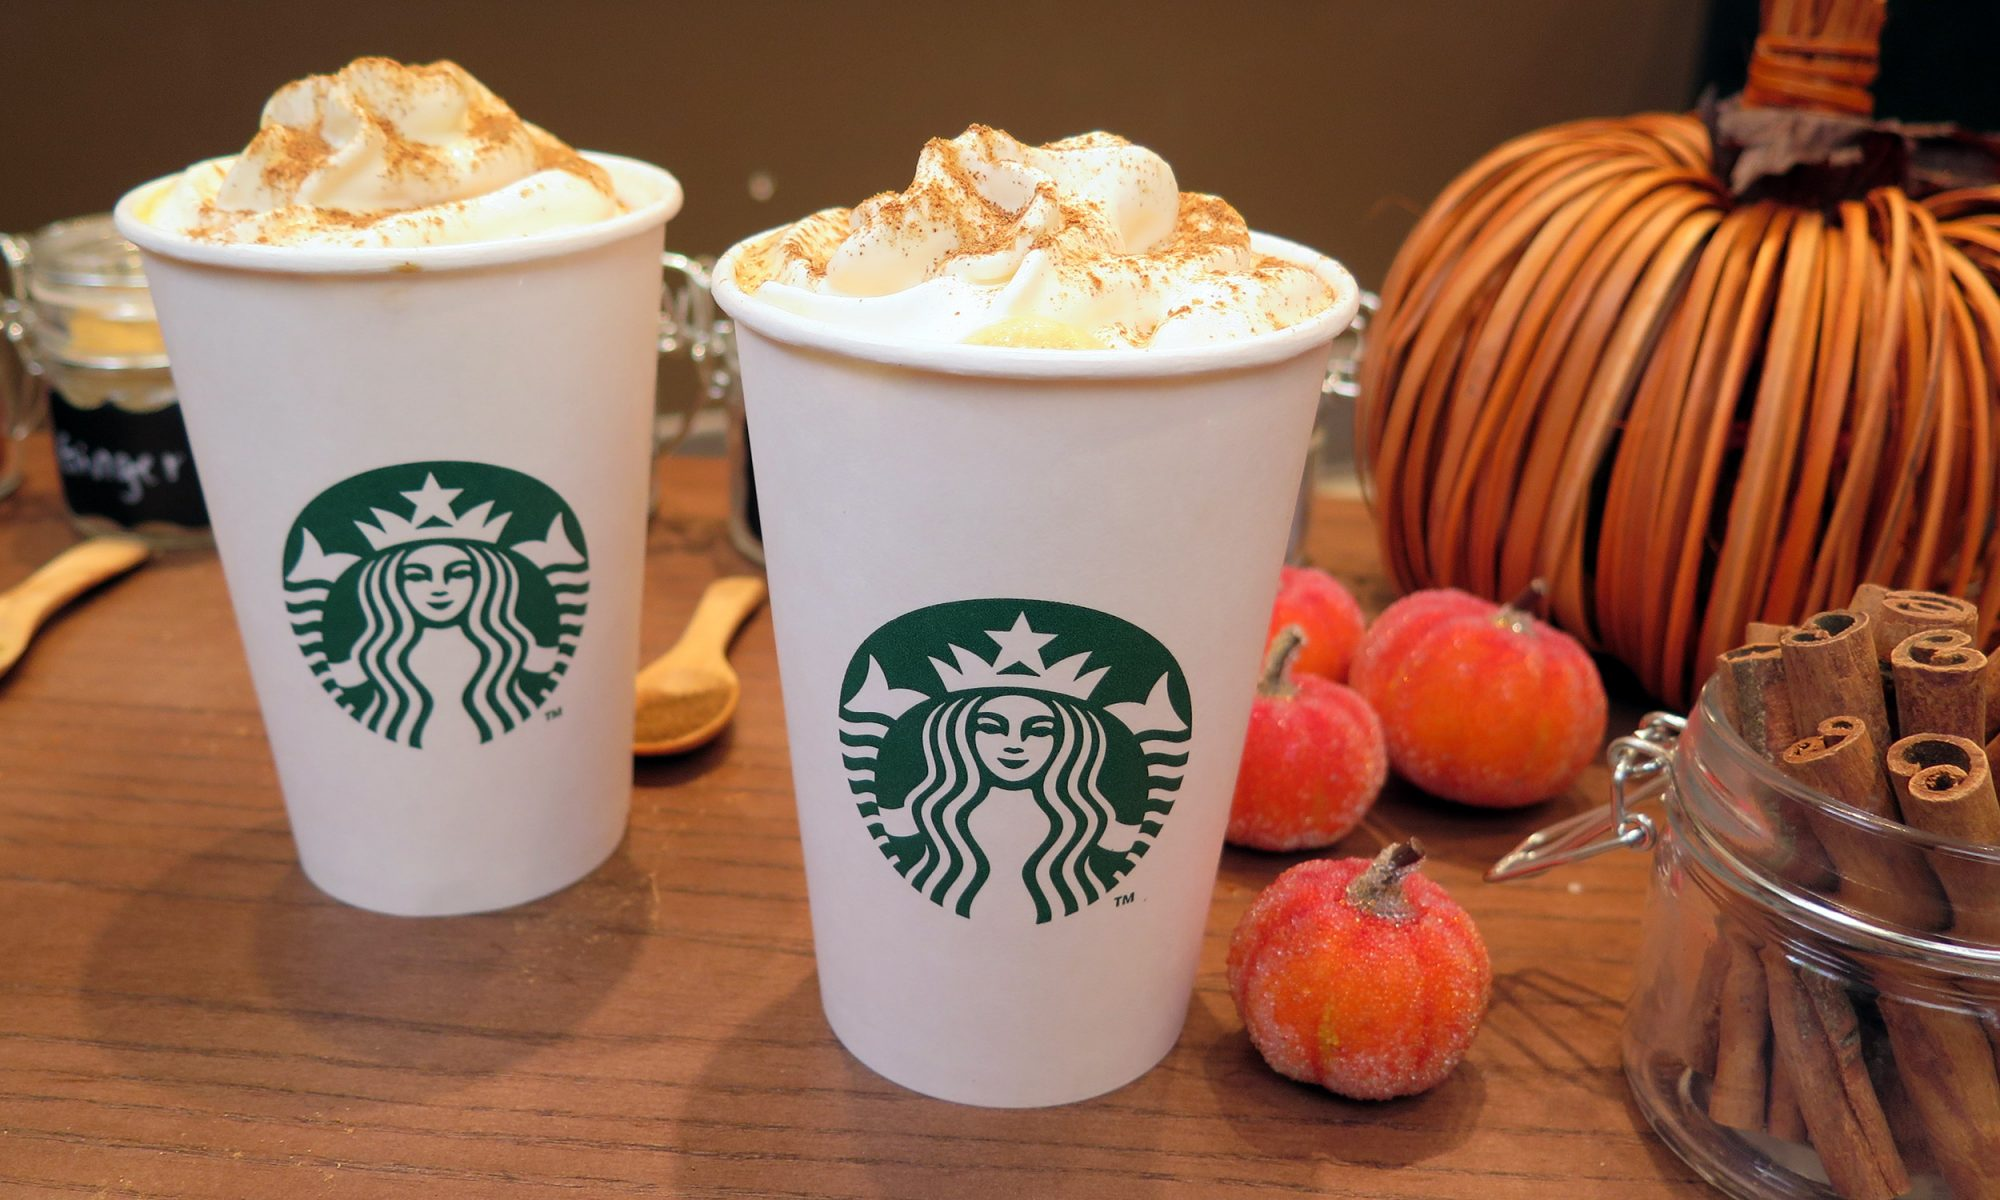 EC: Starbucks Pumpkin Spice Latte Returns on September 6